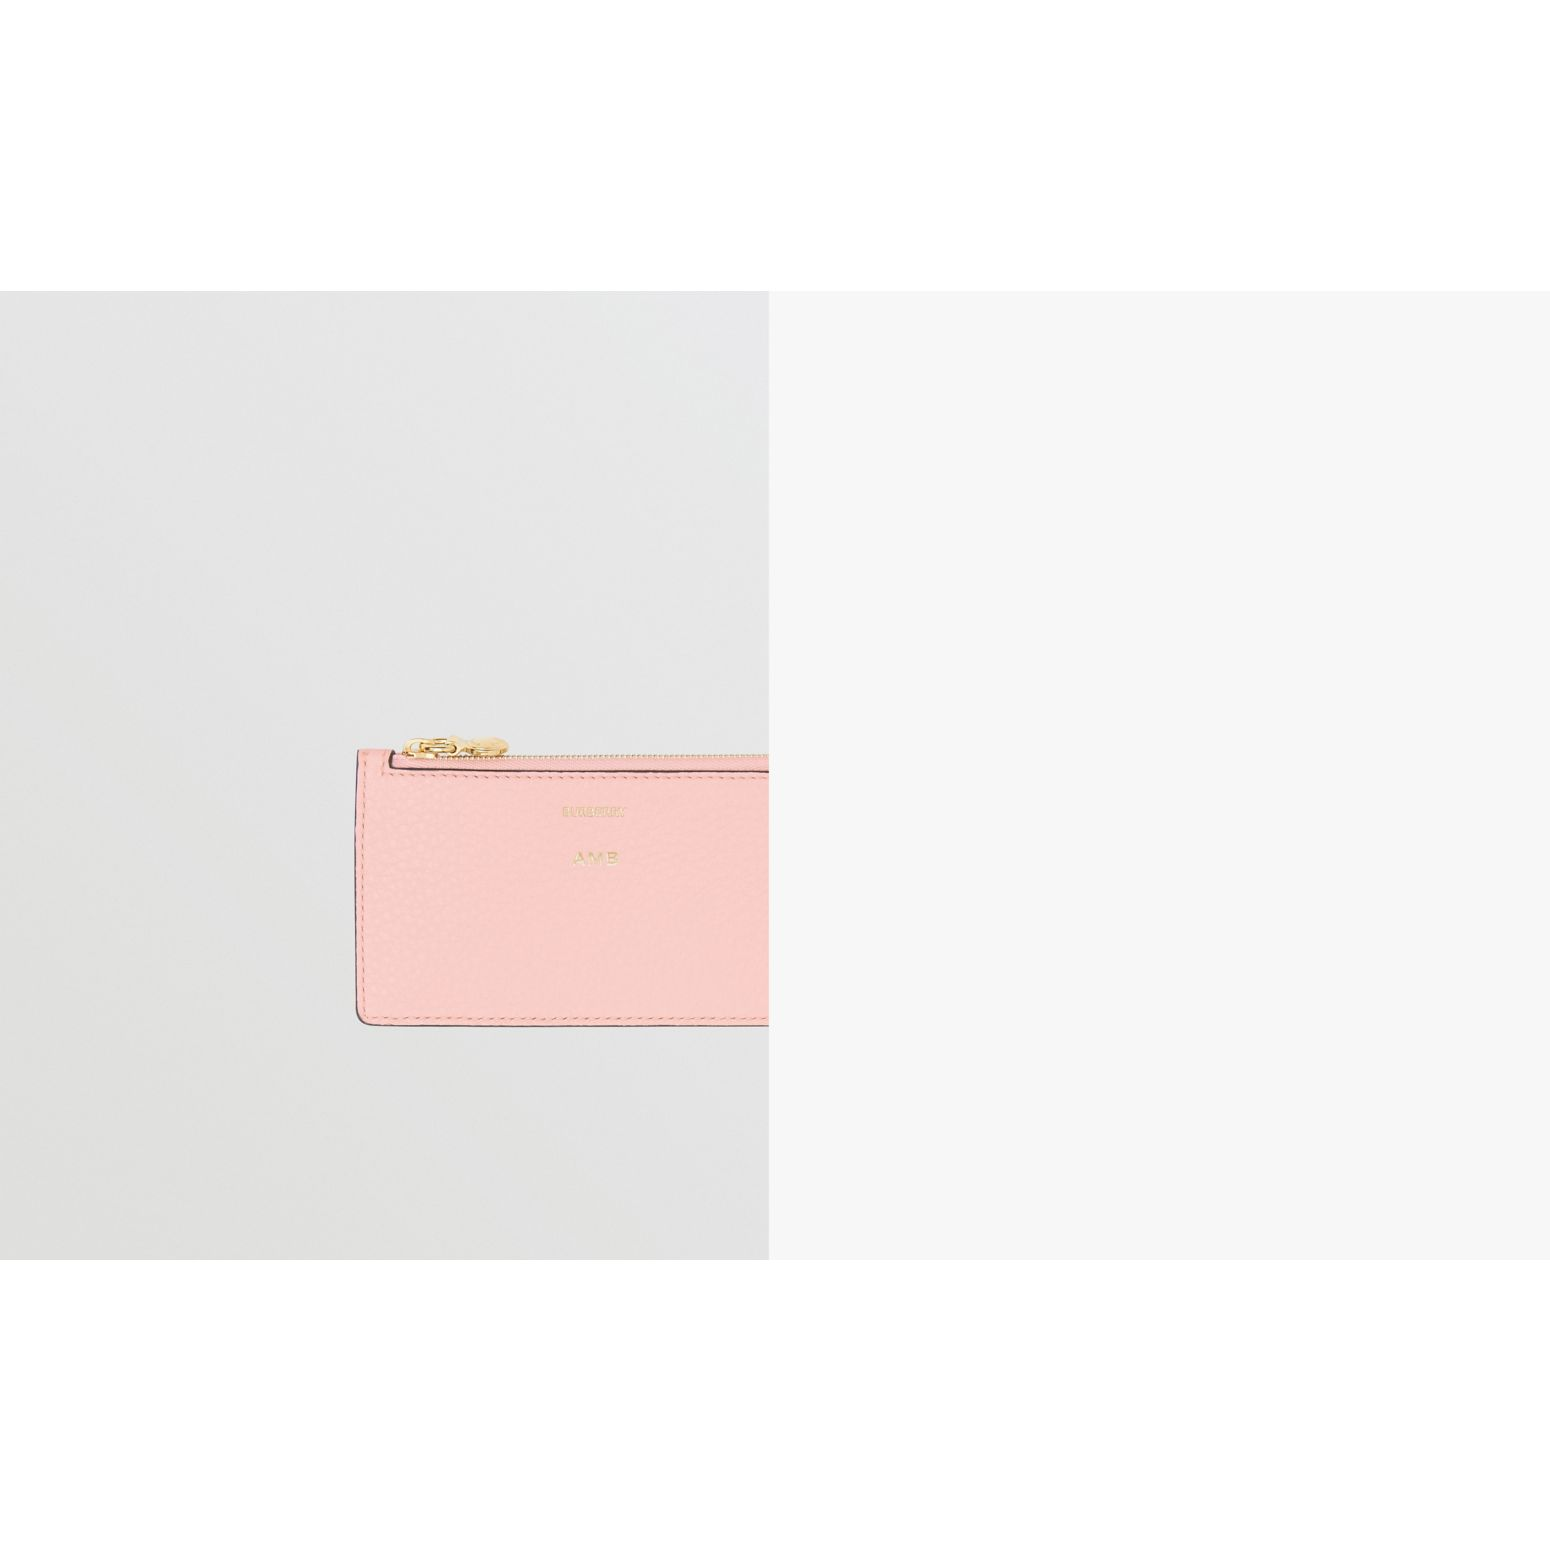 Leather Zip Card Case in Pale Ash Rose | Burberry Australia - gallery image 1